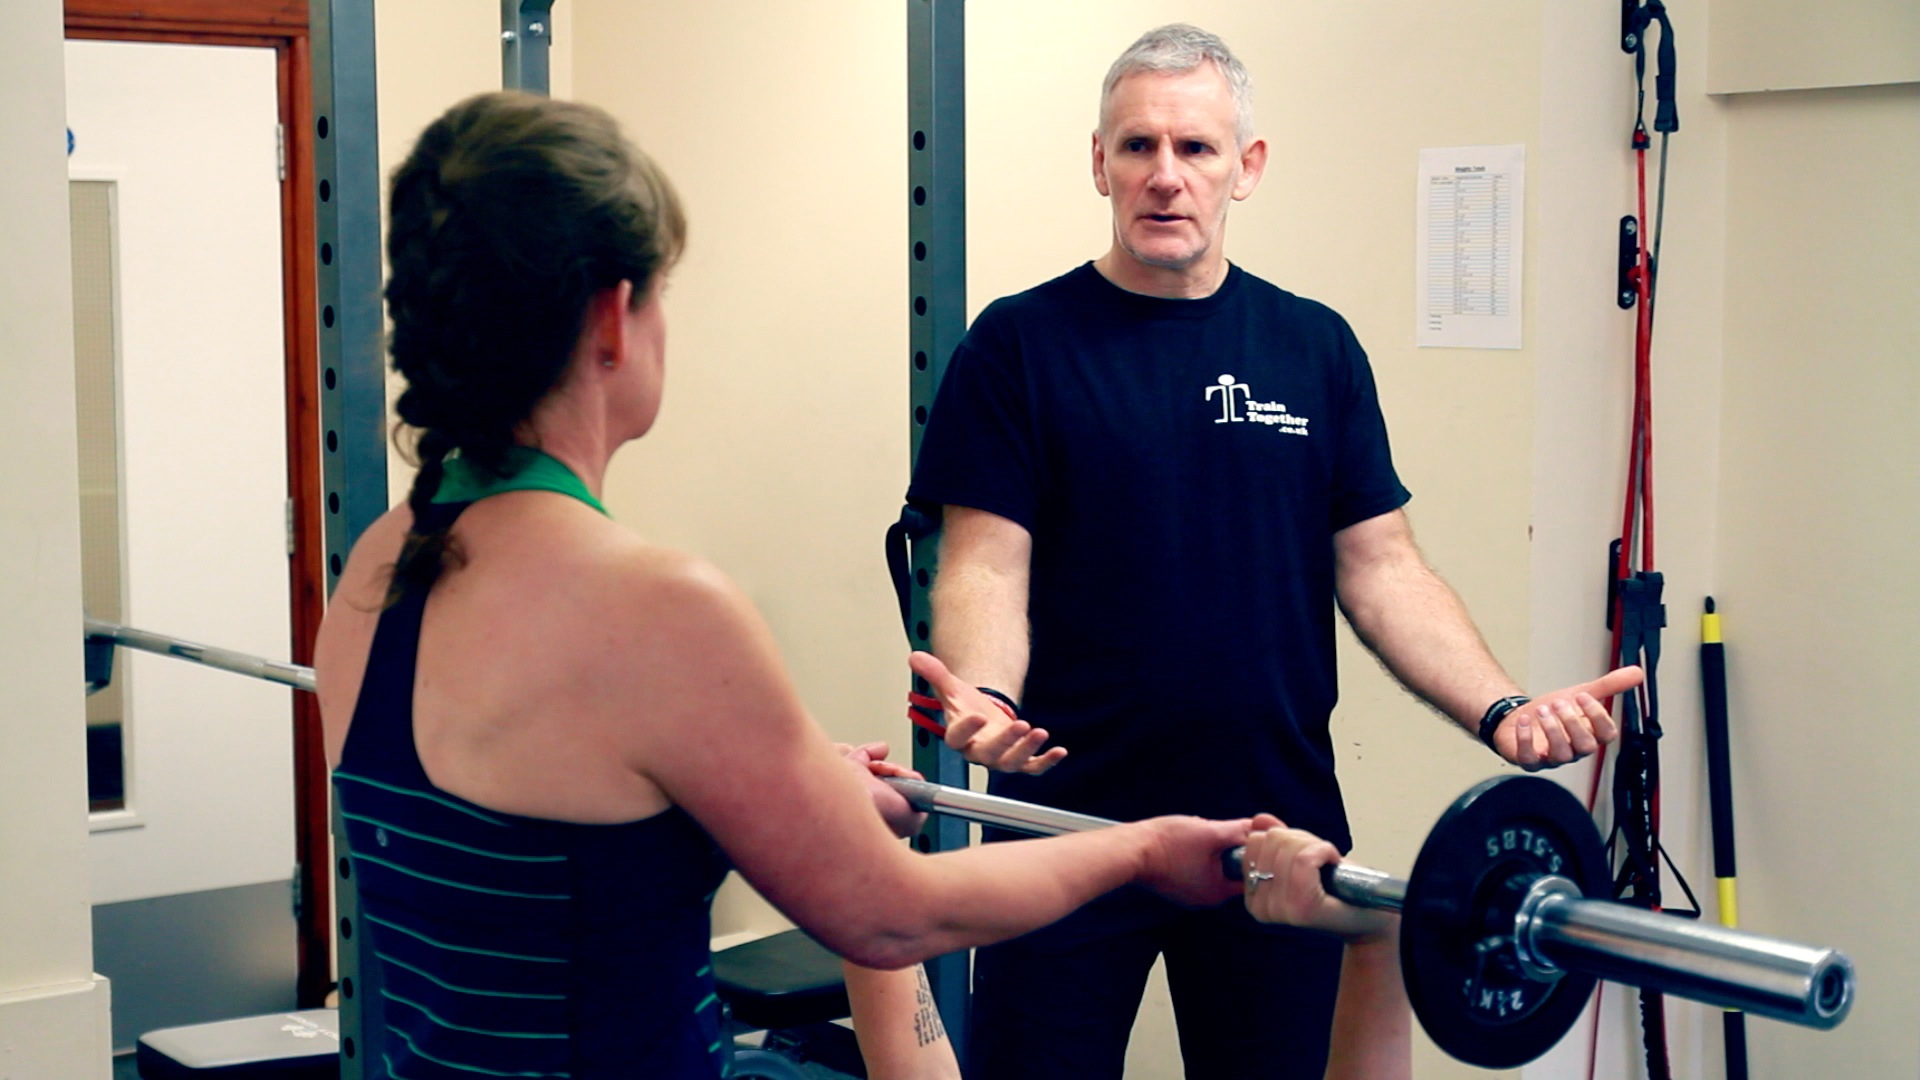 How do you choose a personal trainer?